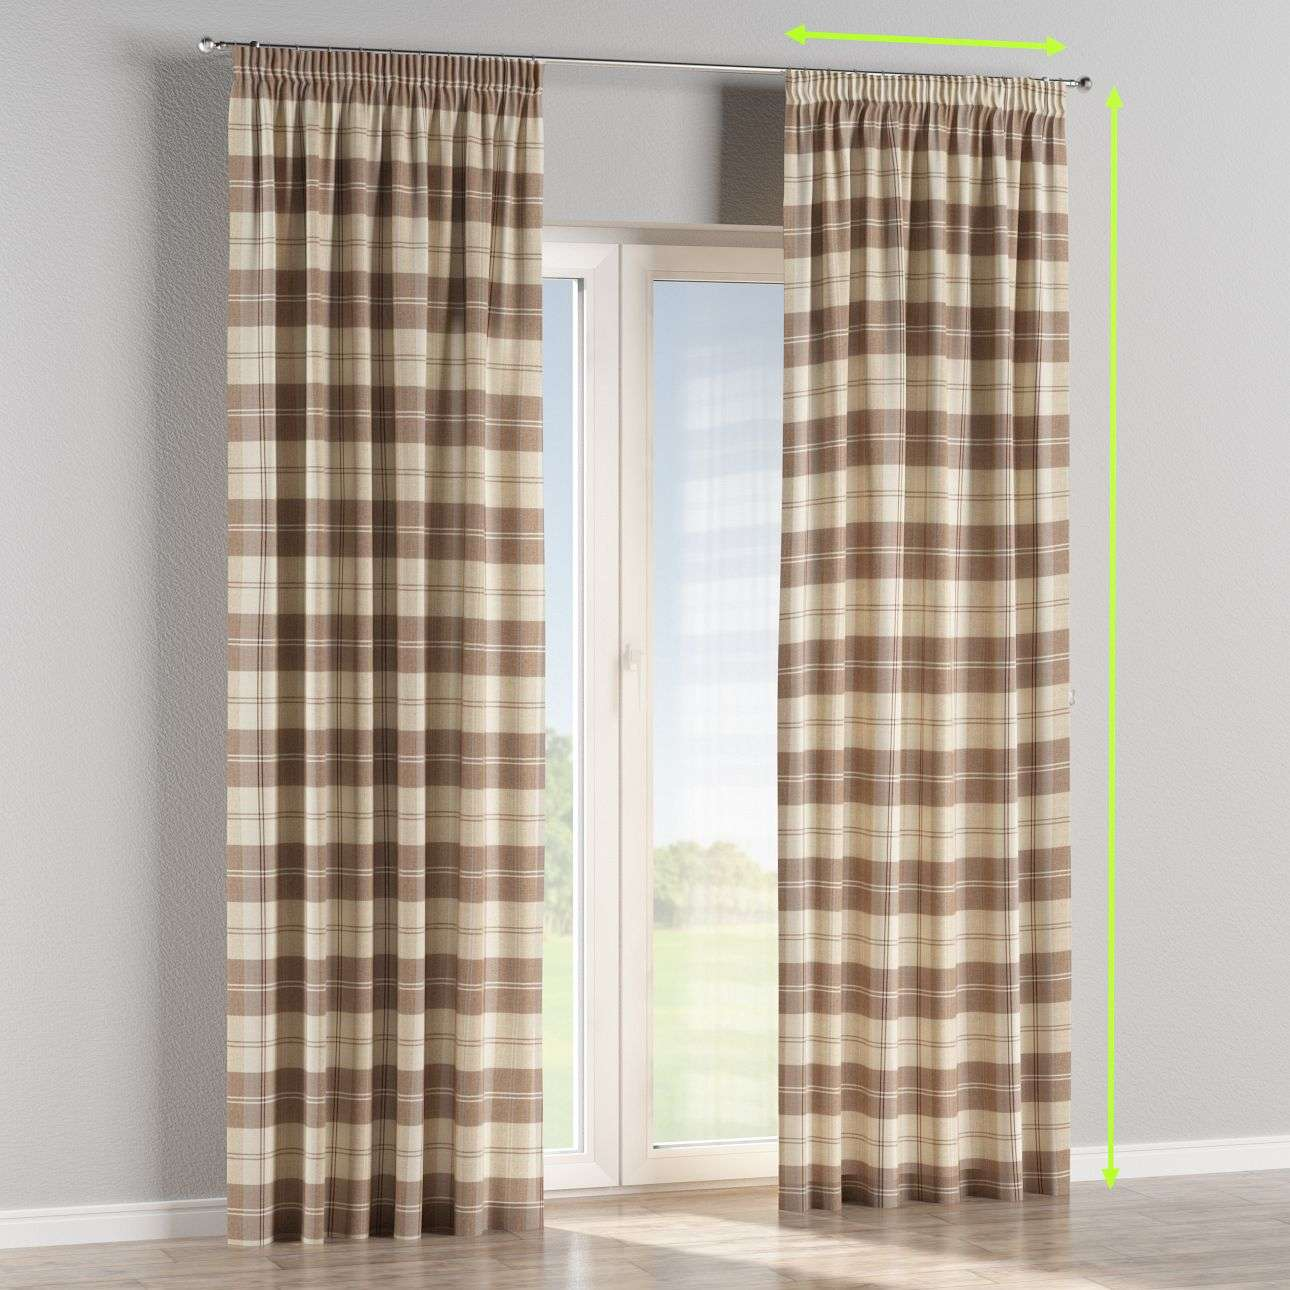 Pencil pleat lined curtains in collection Edinburgh, fabric: 115-80